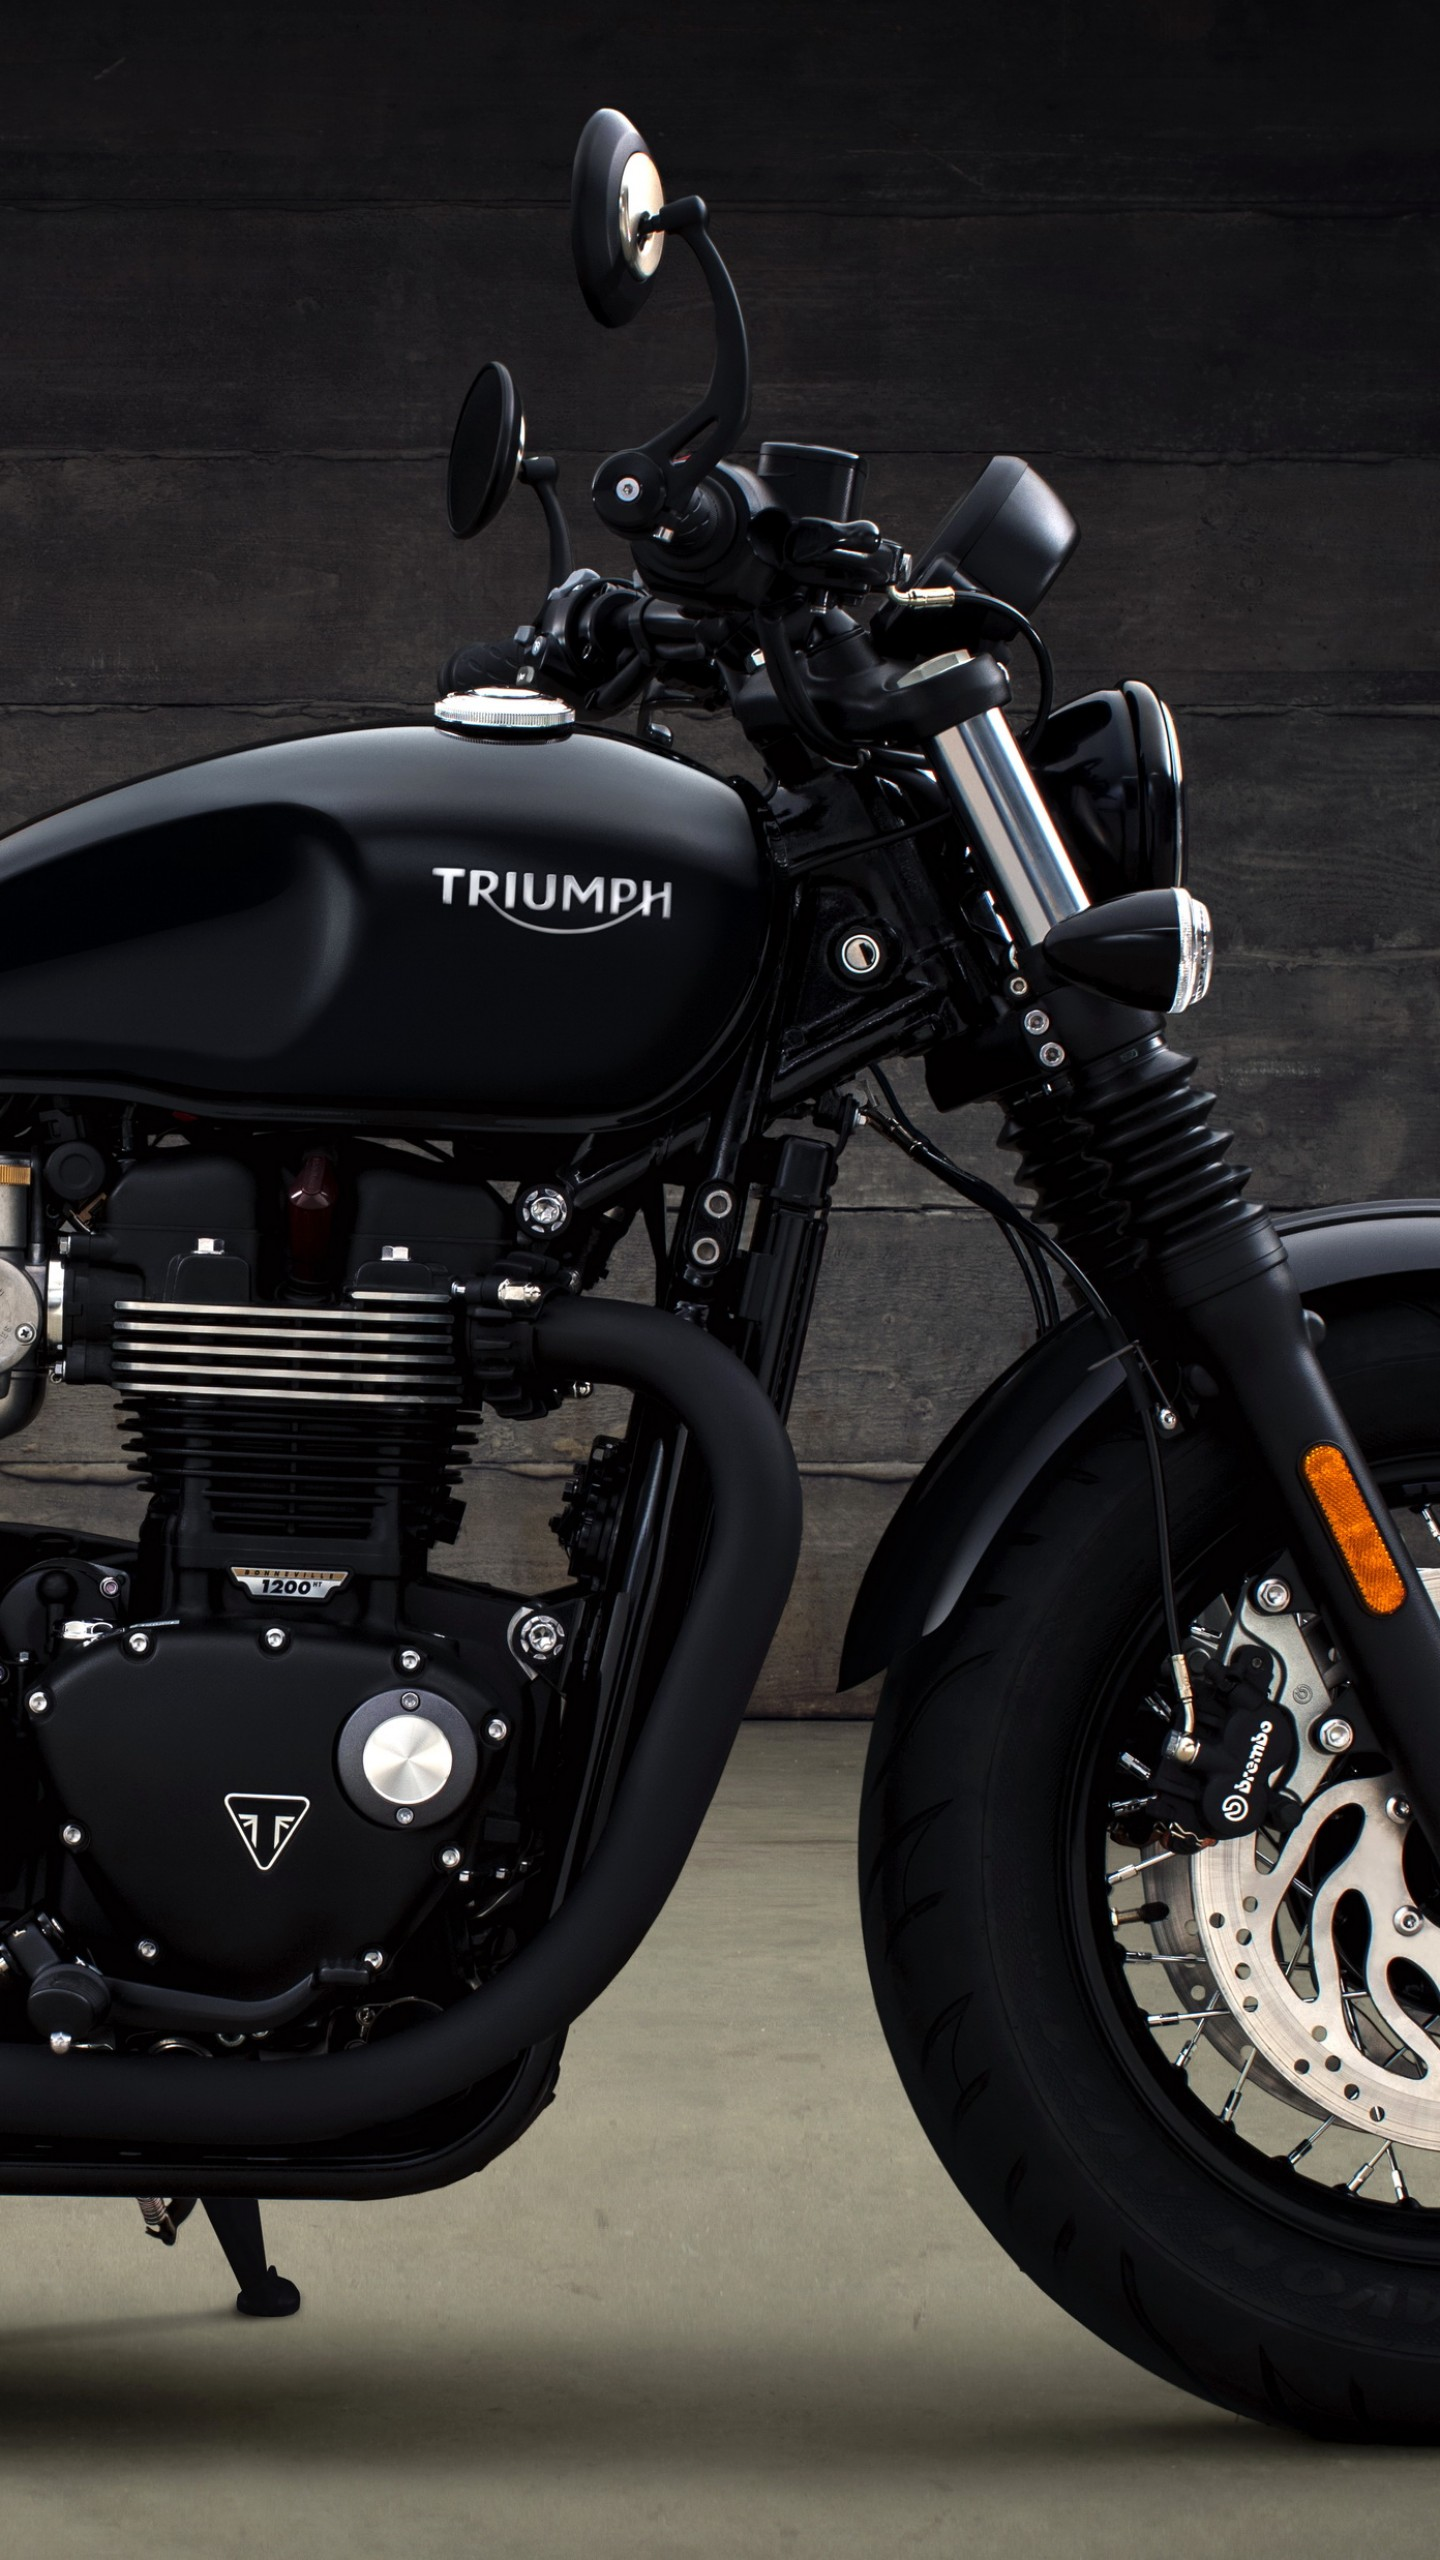 Triumph Motorcycle Wallpaper Posted By John Cunningham